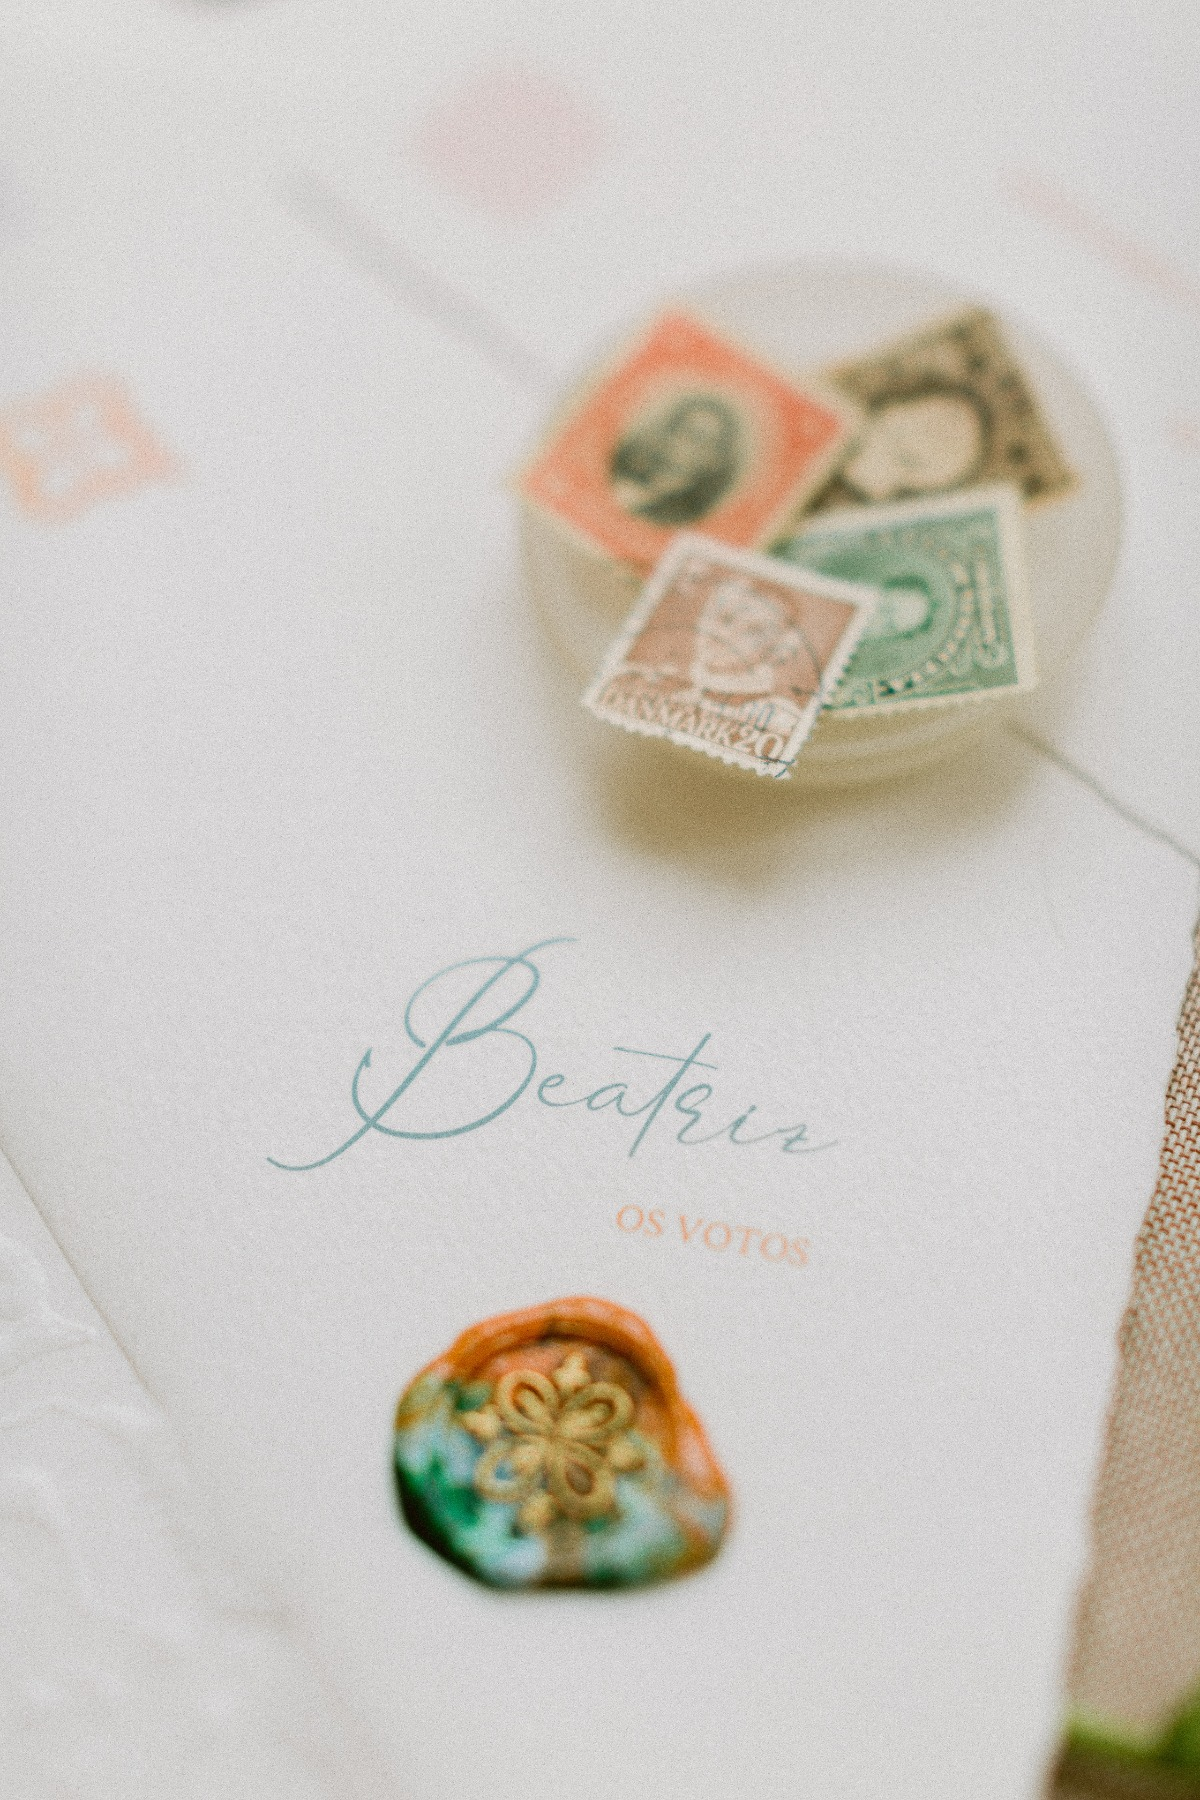 one of a kind wedding stationery created by A Pajarita